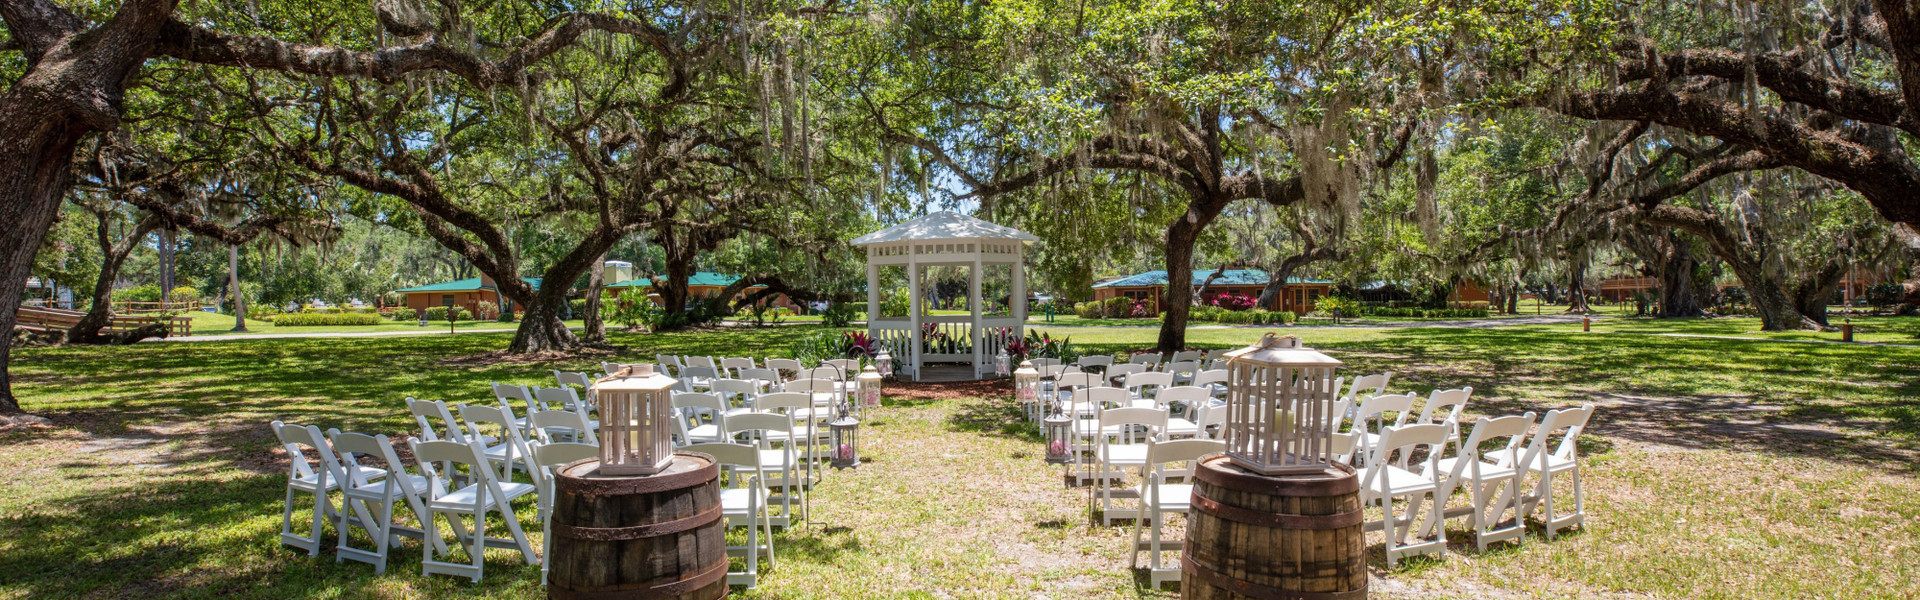 A Country Hotel Wedding Venue With Accommodations On Site In Florida | Country Wedding Setup